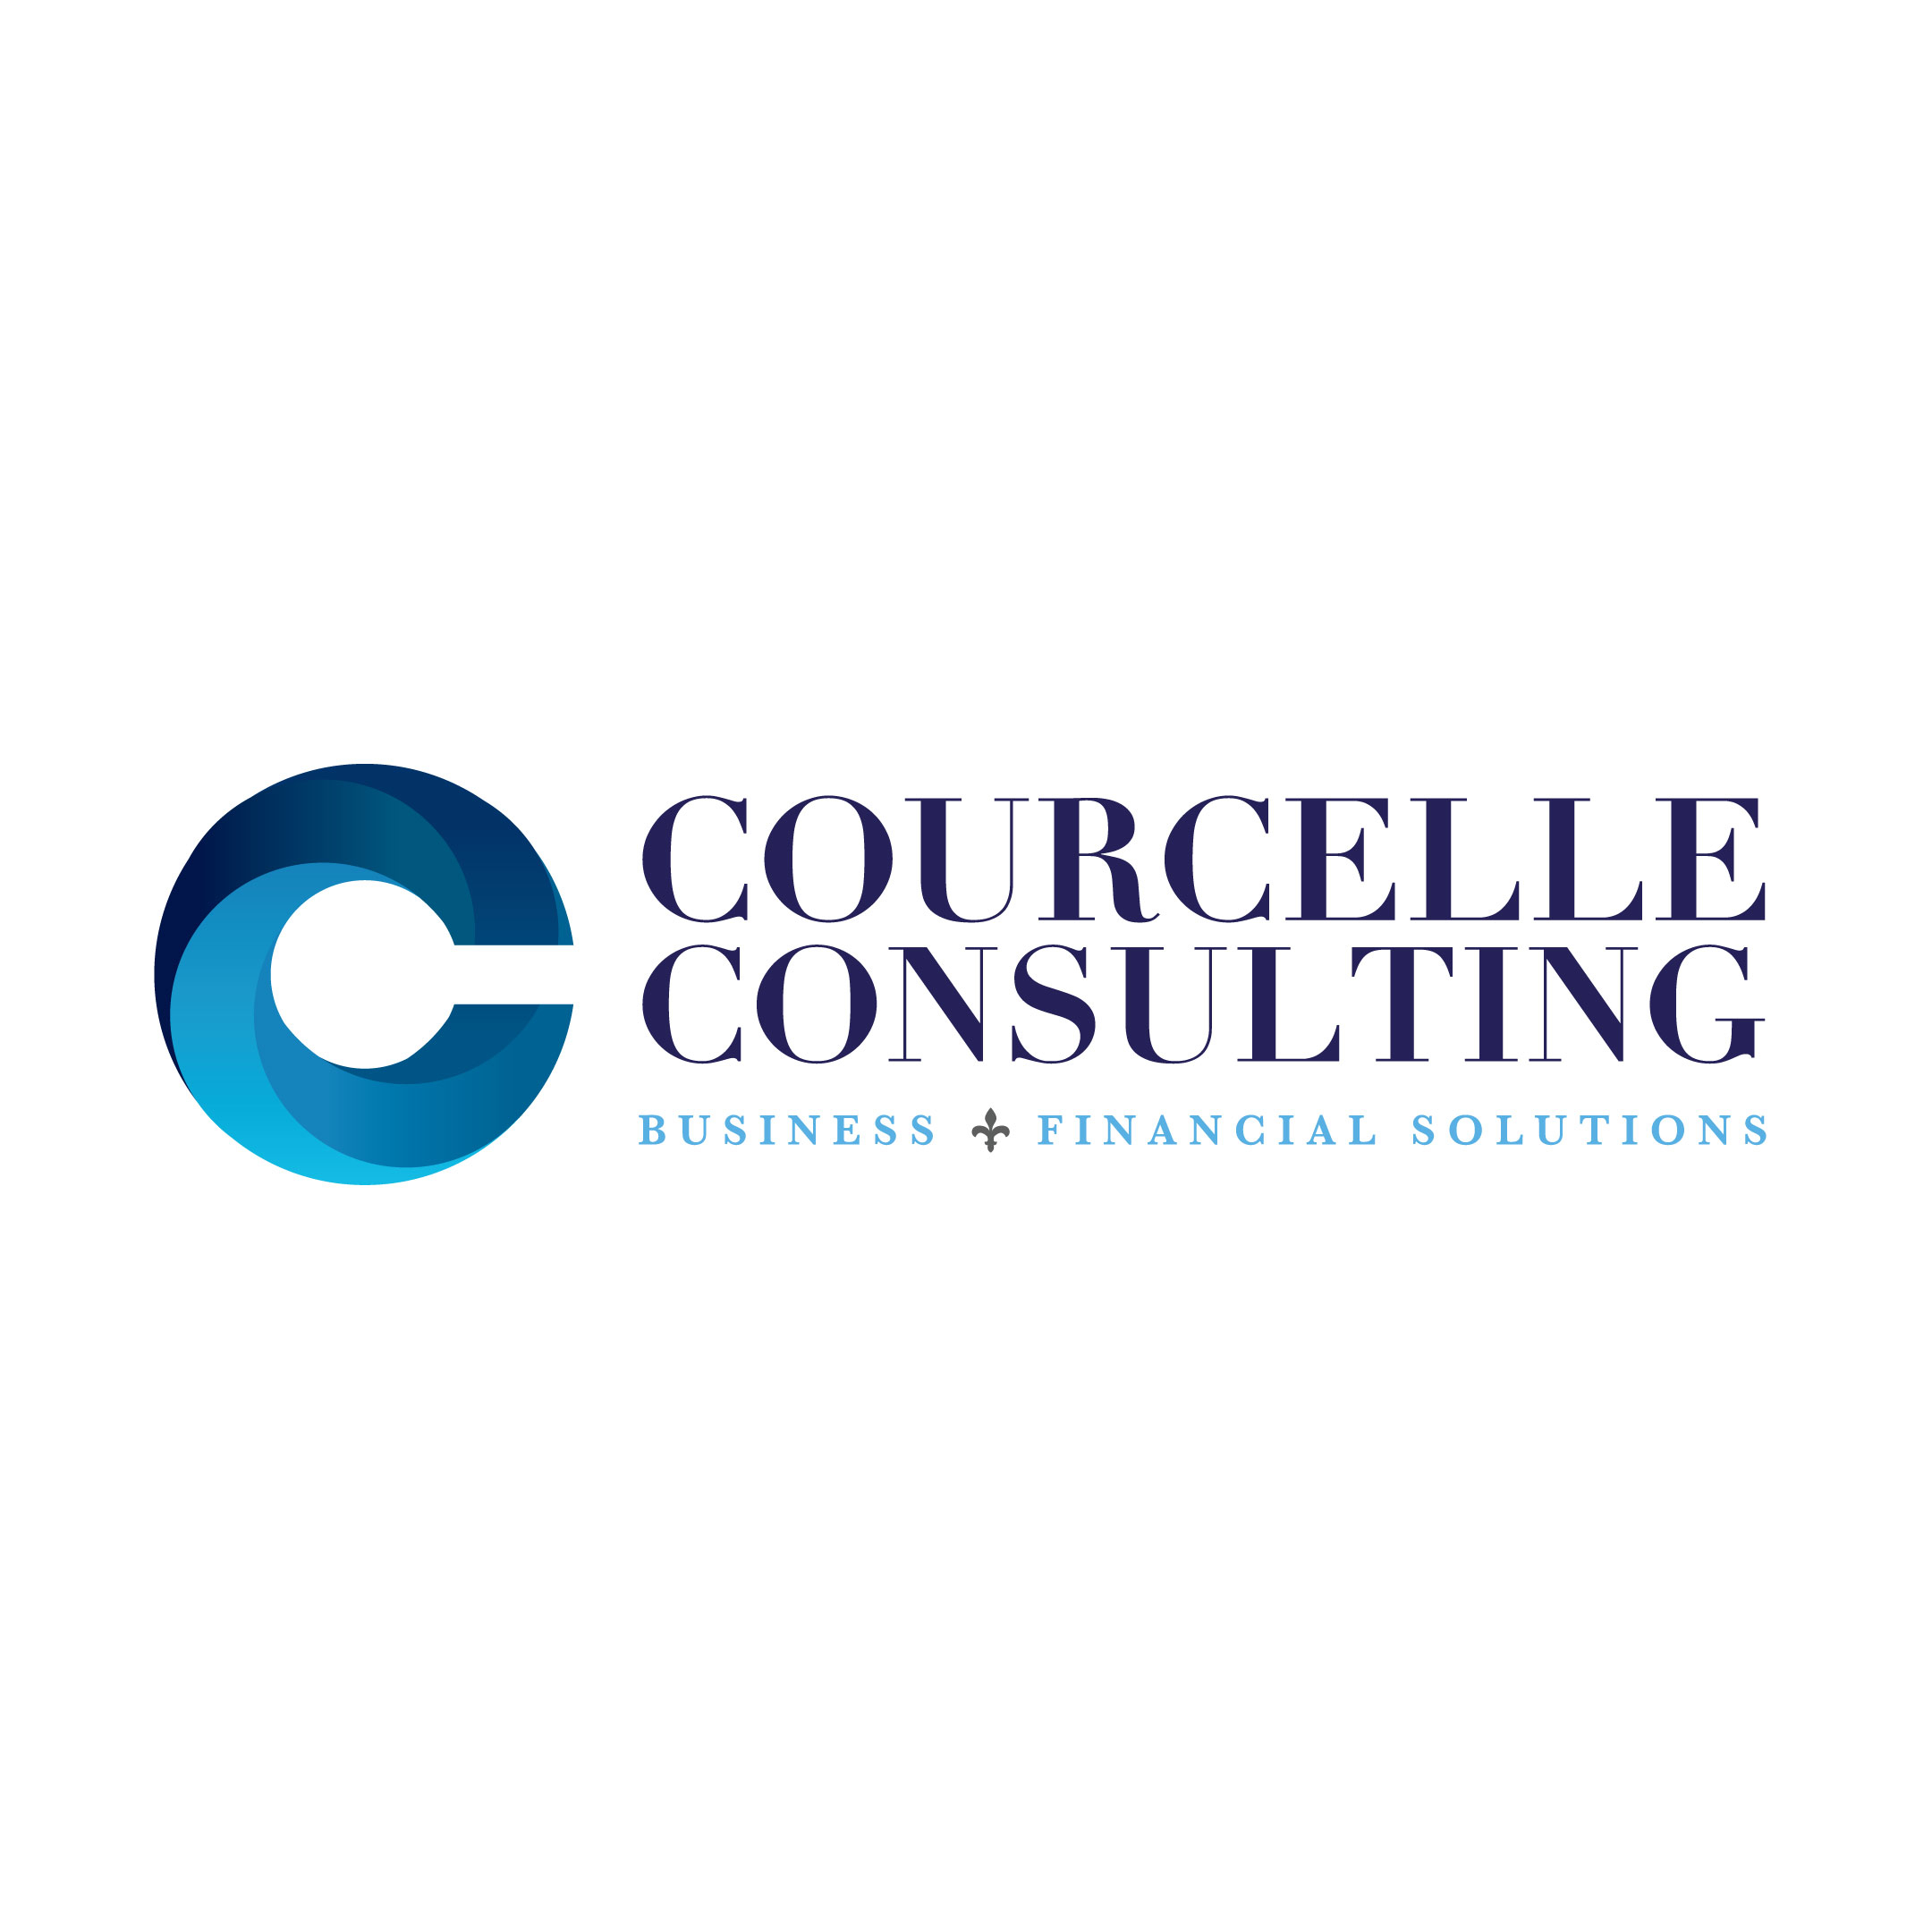 Courcelle Consulting Business and Financial Solutions